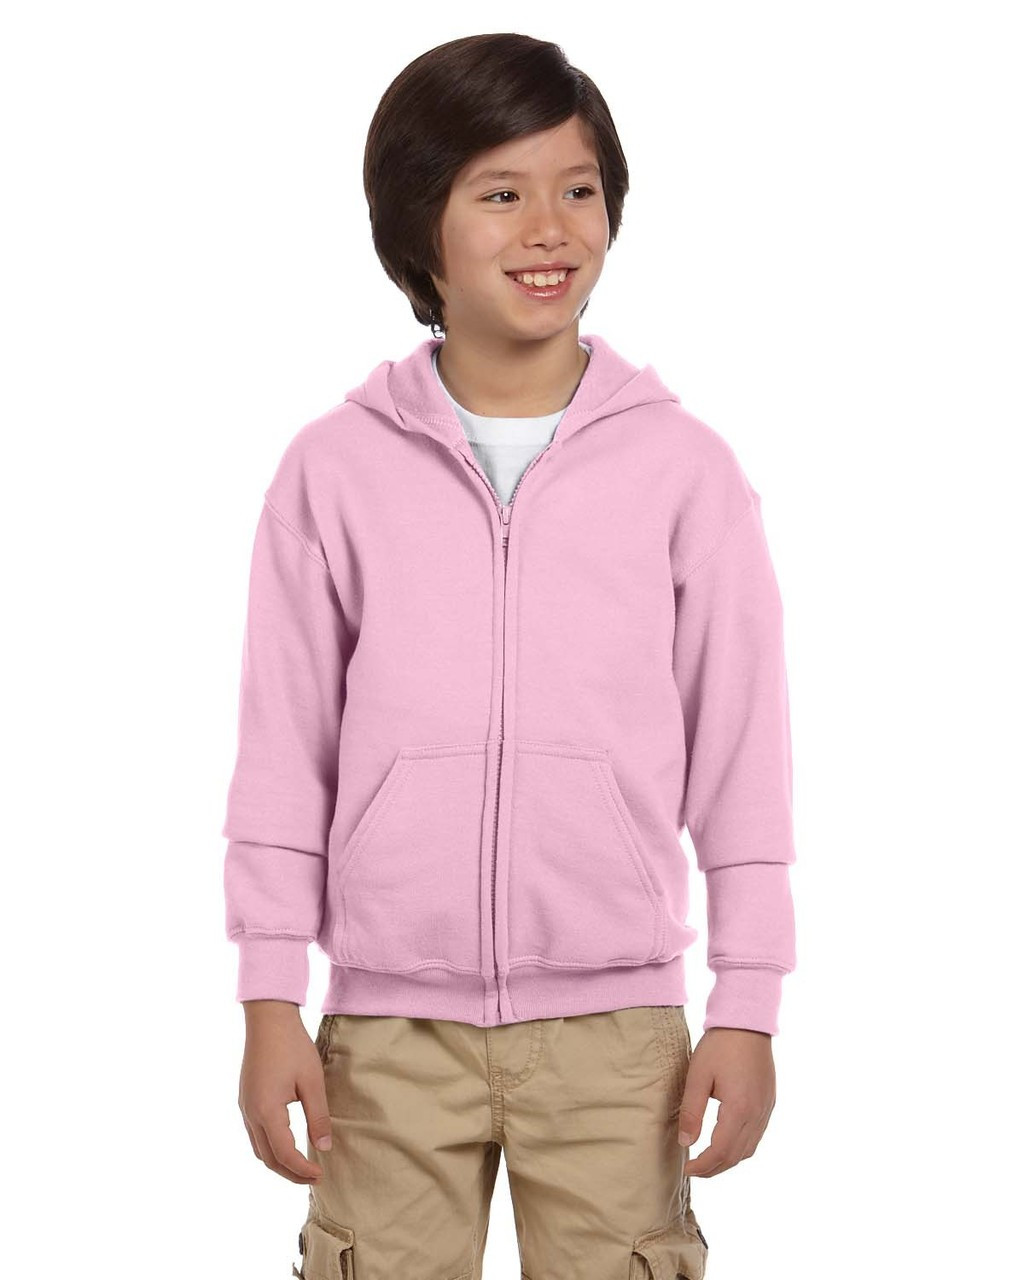 Light Pink  - G186B Gildan Heavy Blend Youth 50/50 Full Zip Hoodie | Blankclothing.ca